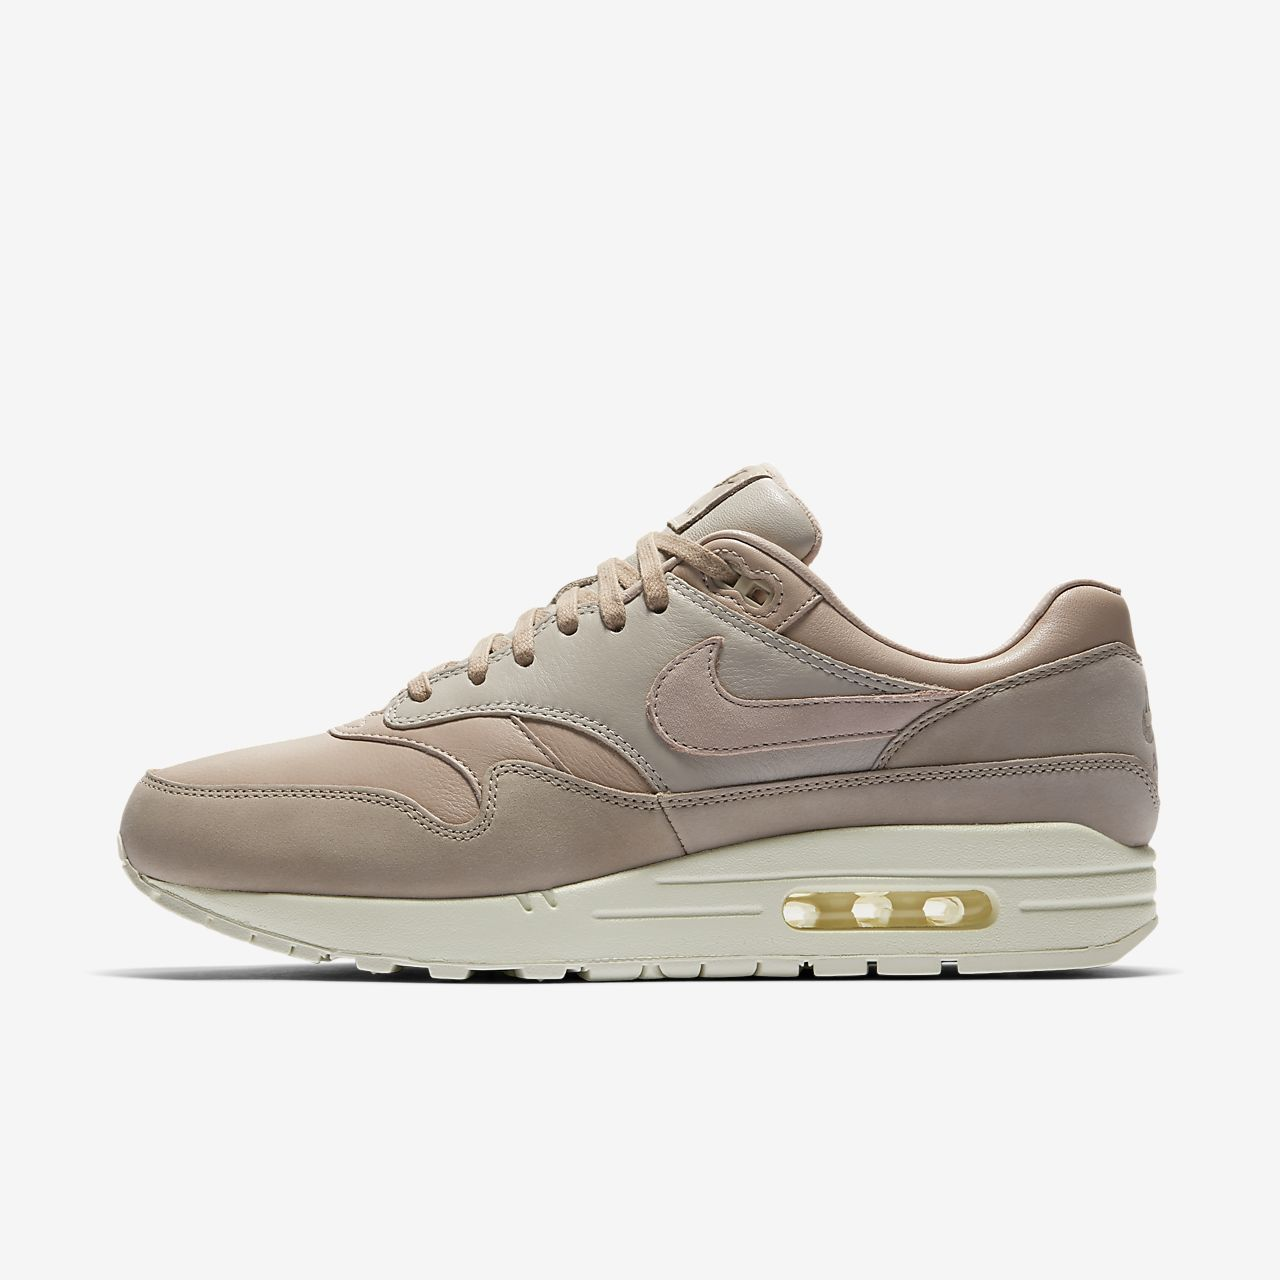 pretty nice c5e2e 37c3b Nike Air Max 1 Pinnacle